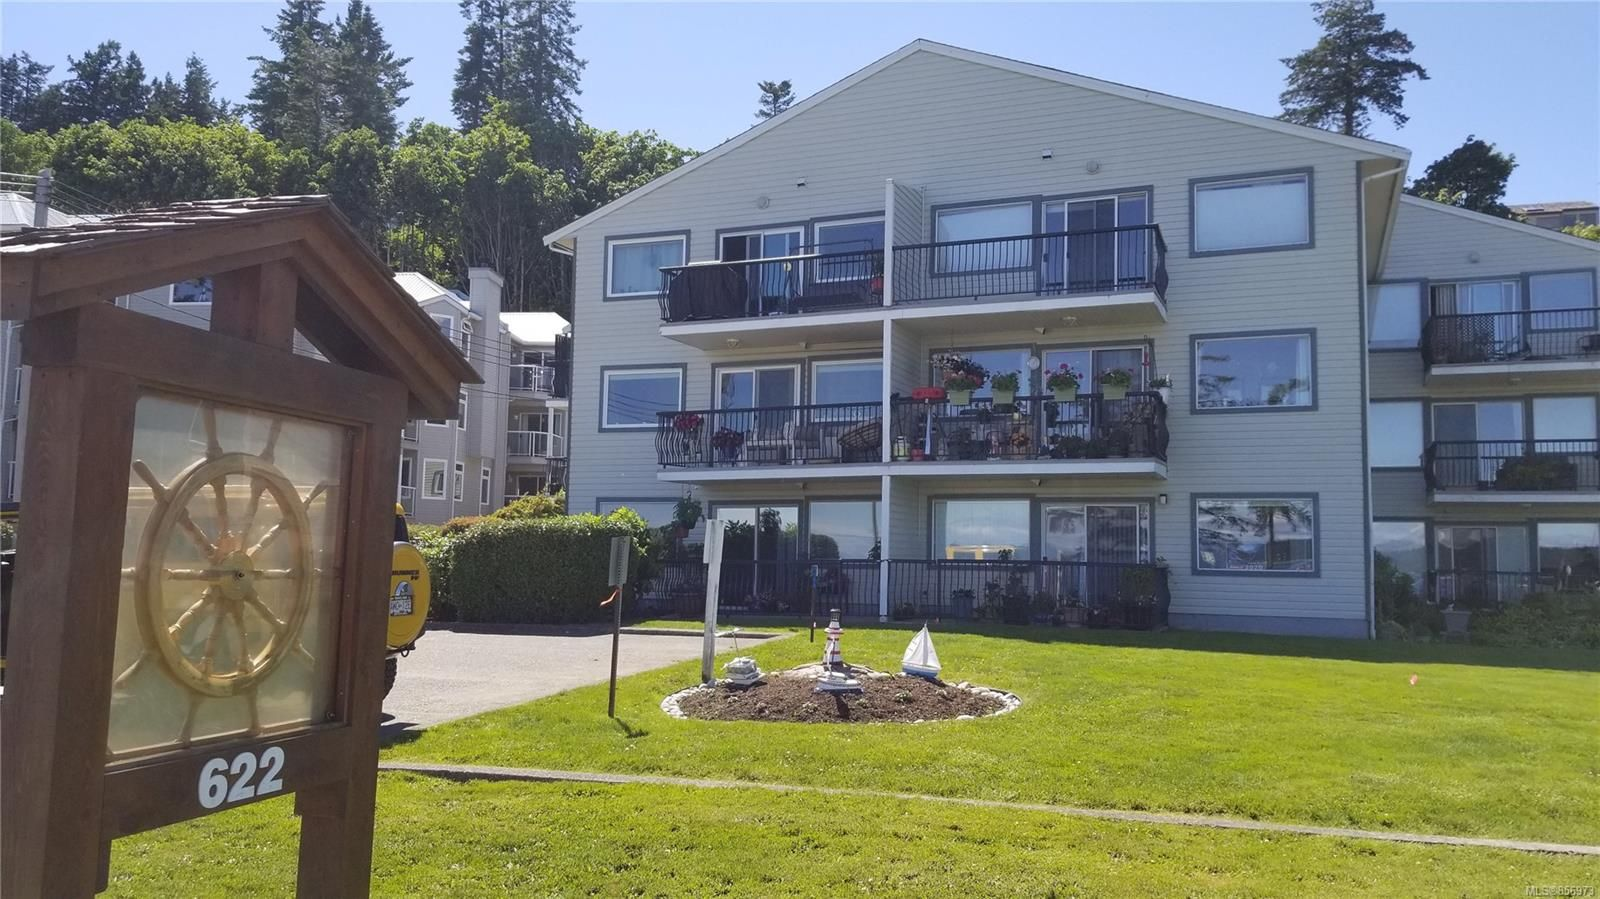 Main Photo: 308 622 S Island Hwy in Campbell River: CR Campbell River Central Condo for sale : MLS®# 856973